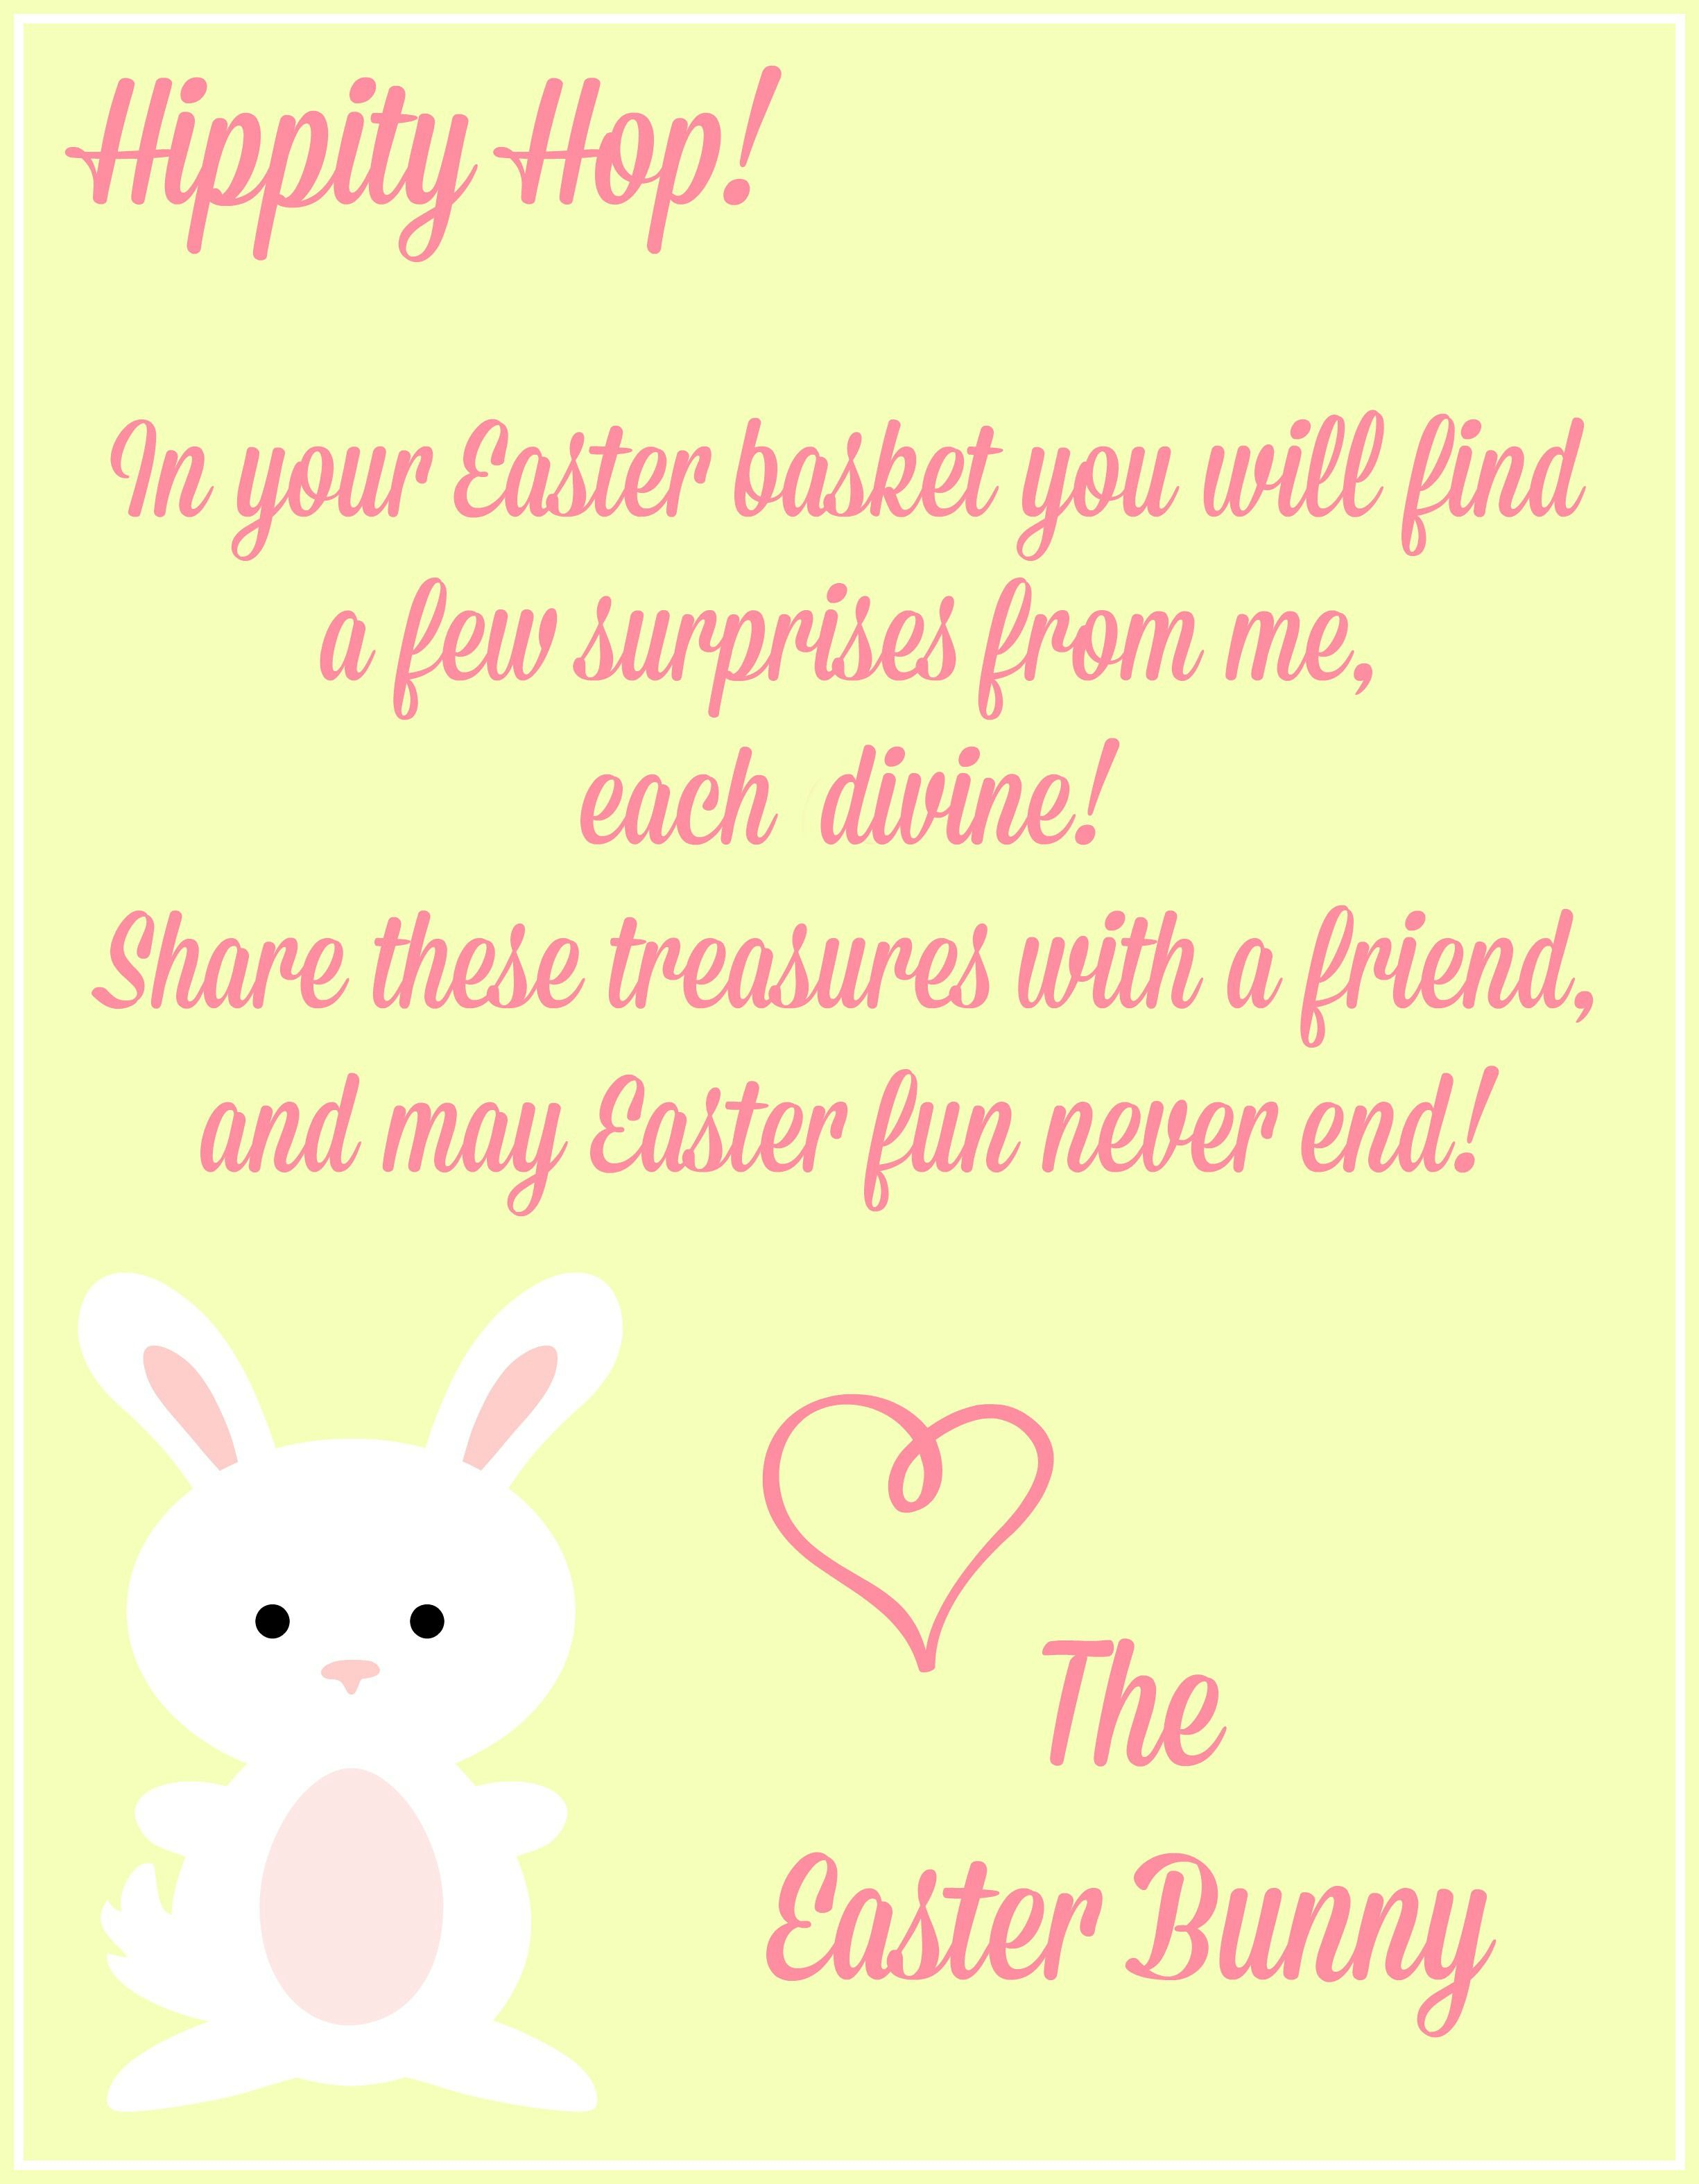 image relating to Letter From Easter Bunny Printable named Cost-free Easter Printables Notes Versus The Easter Bunny